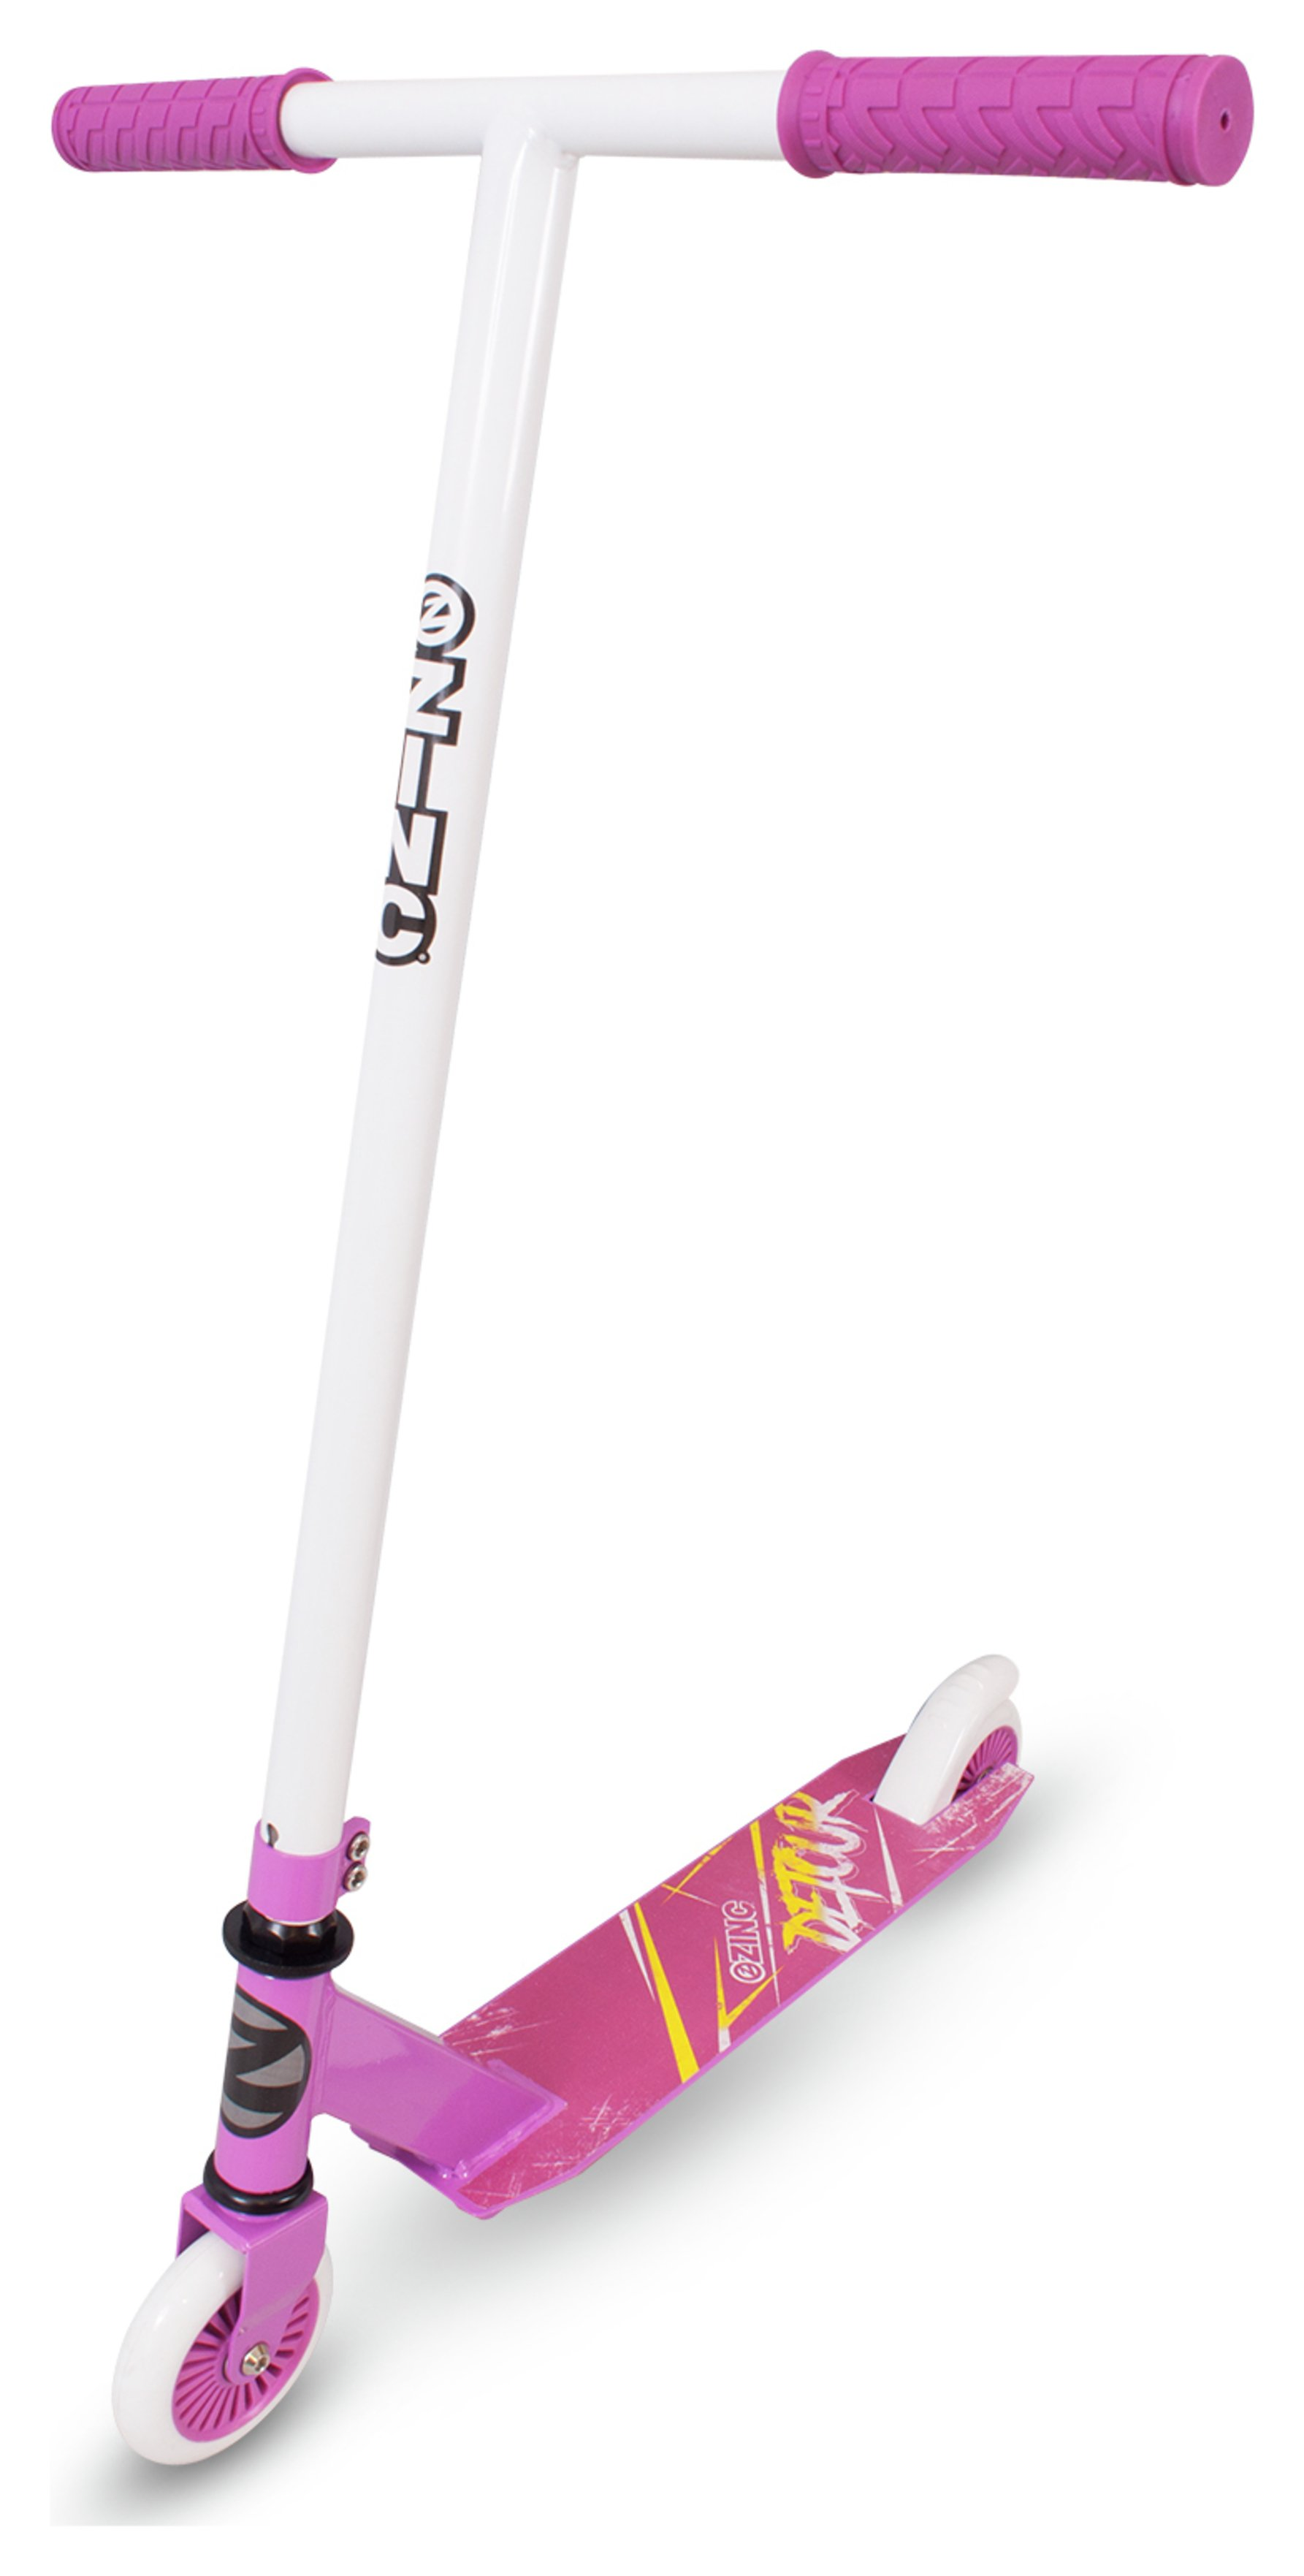 Zinc Detour Stunt Scooter - Pink and White